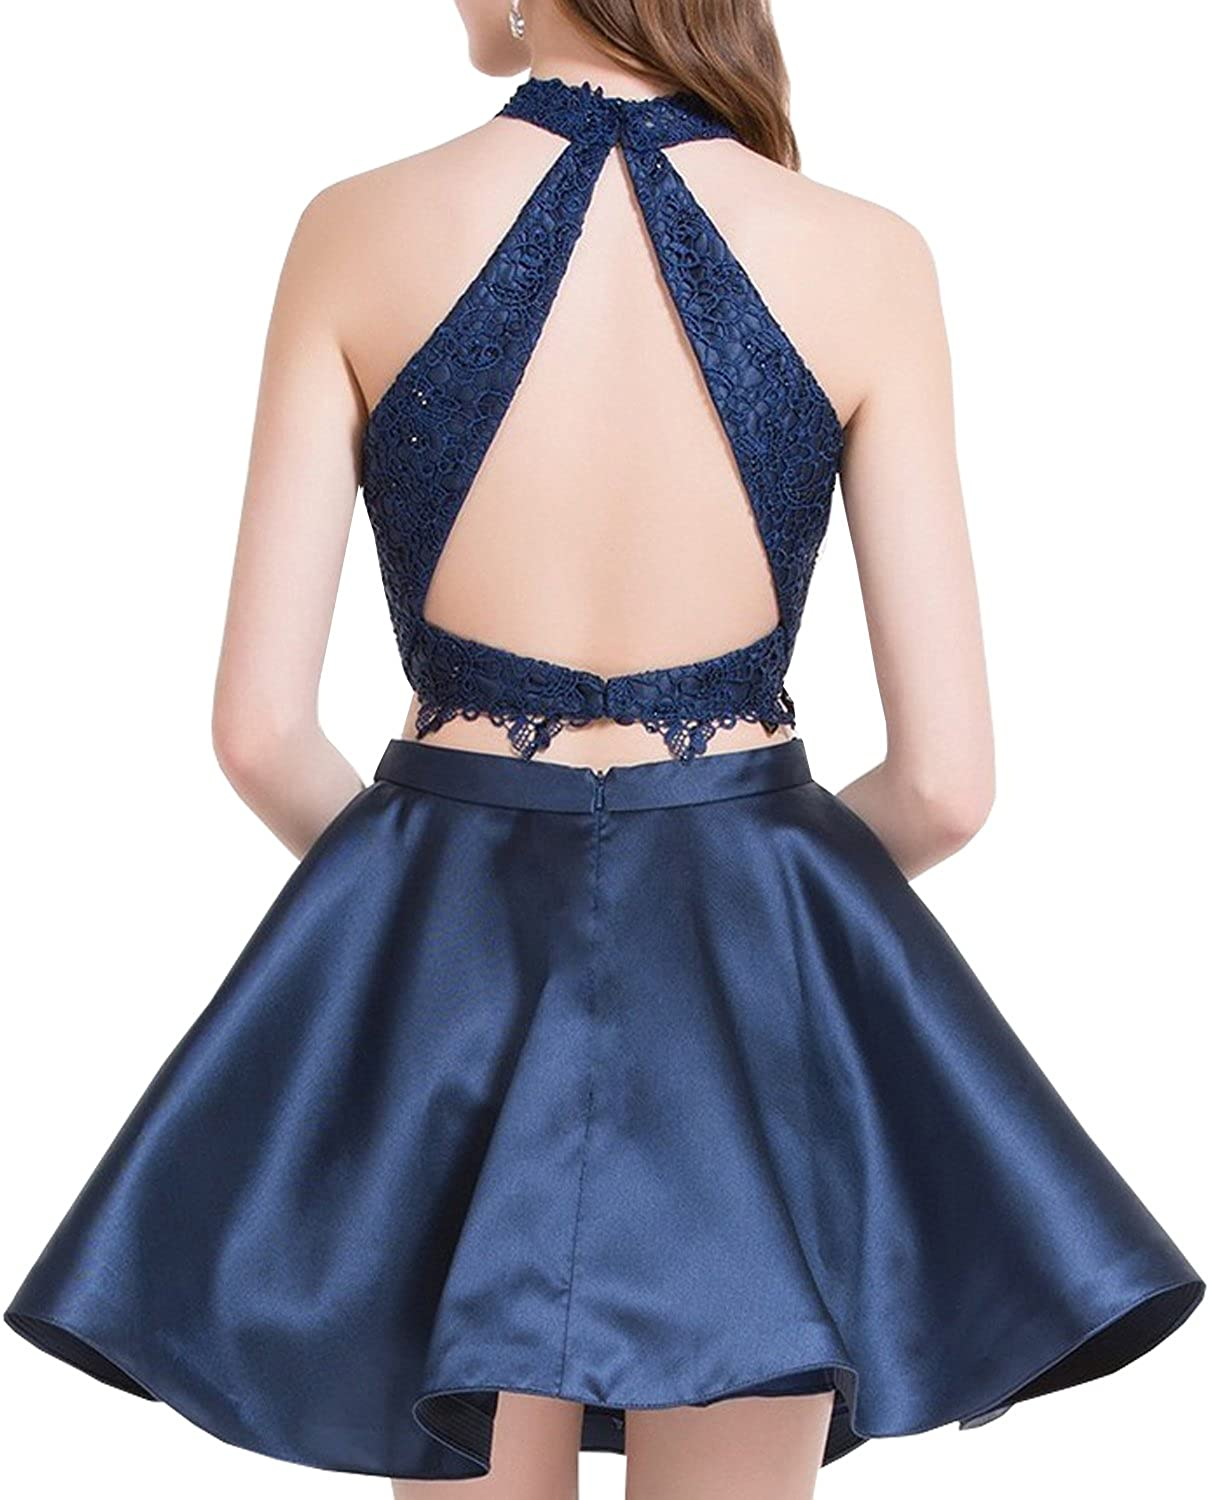 Women's Satin Lace Halter Short Prom Dress 2 Pieces Homecoming Dresses